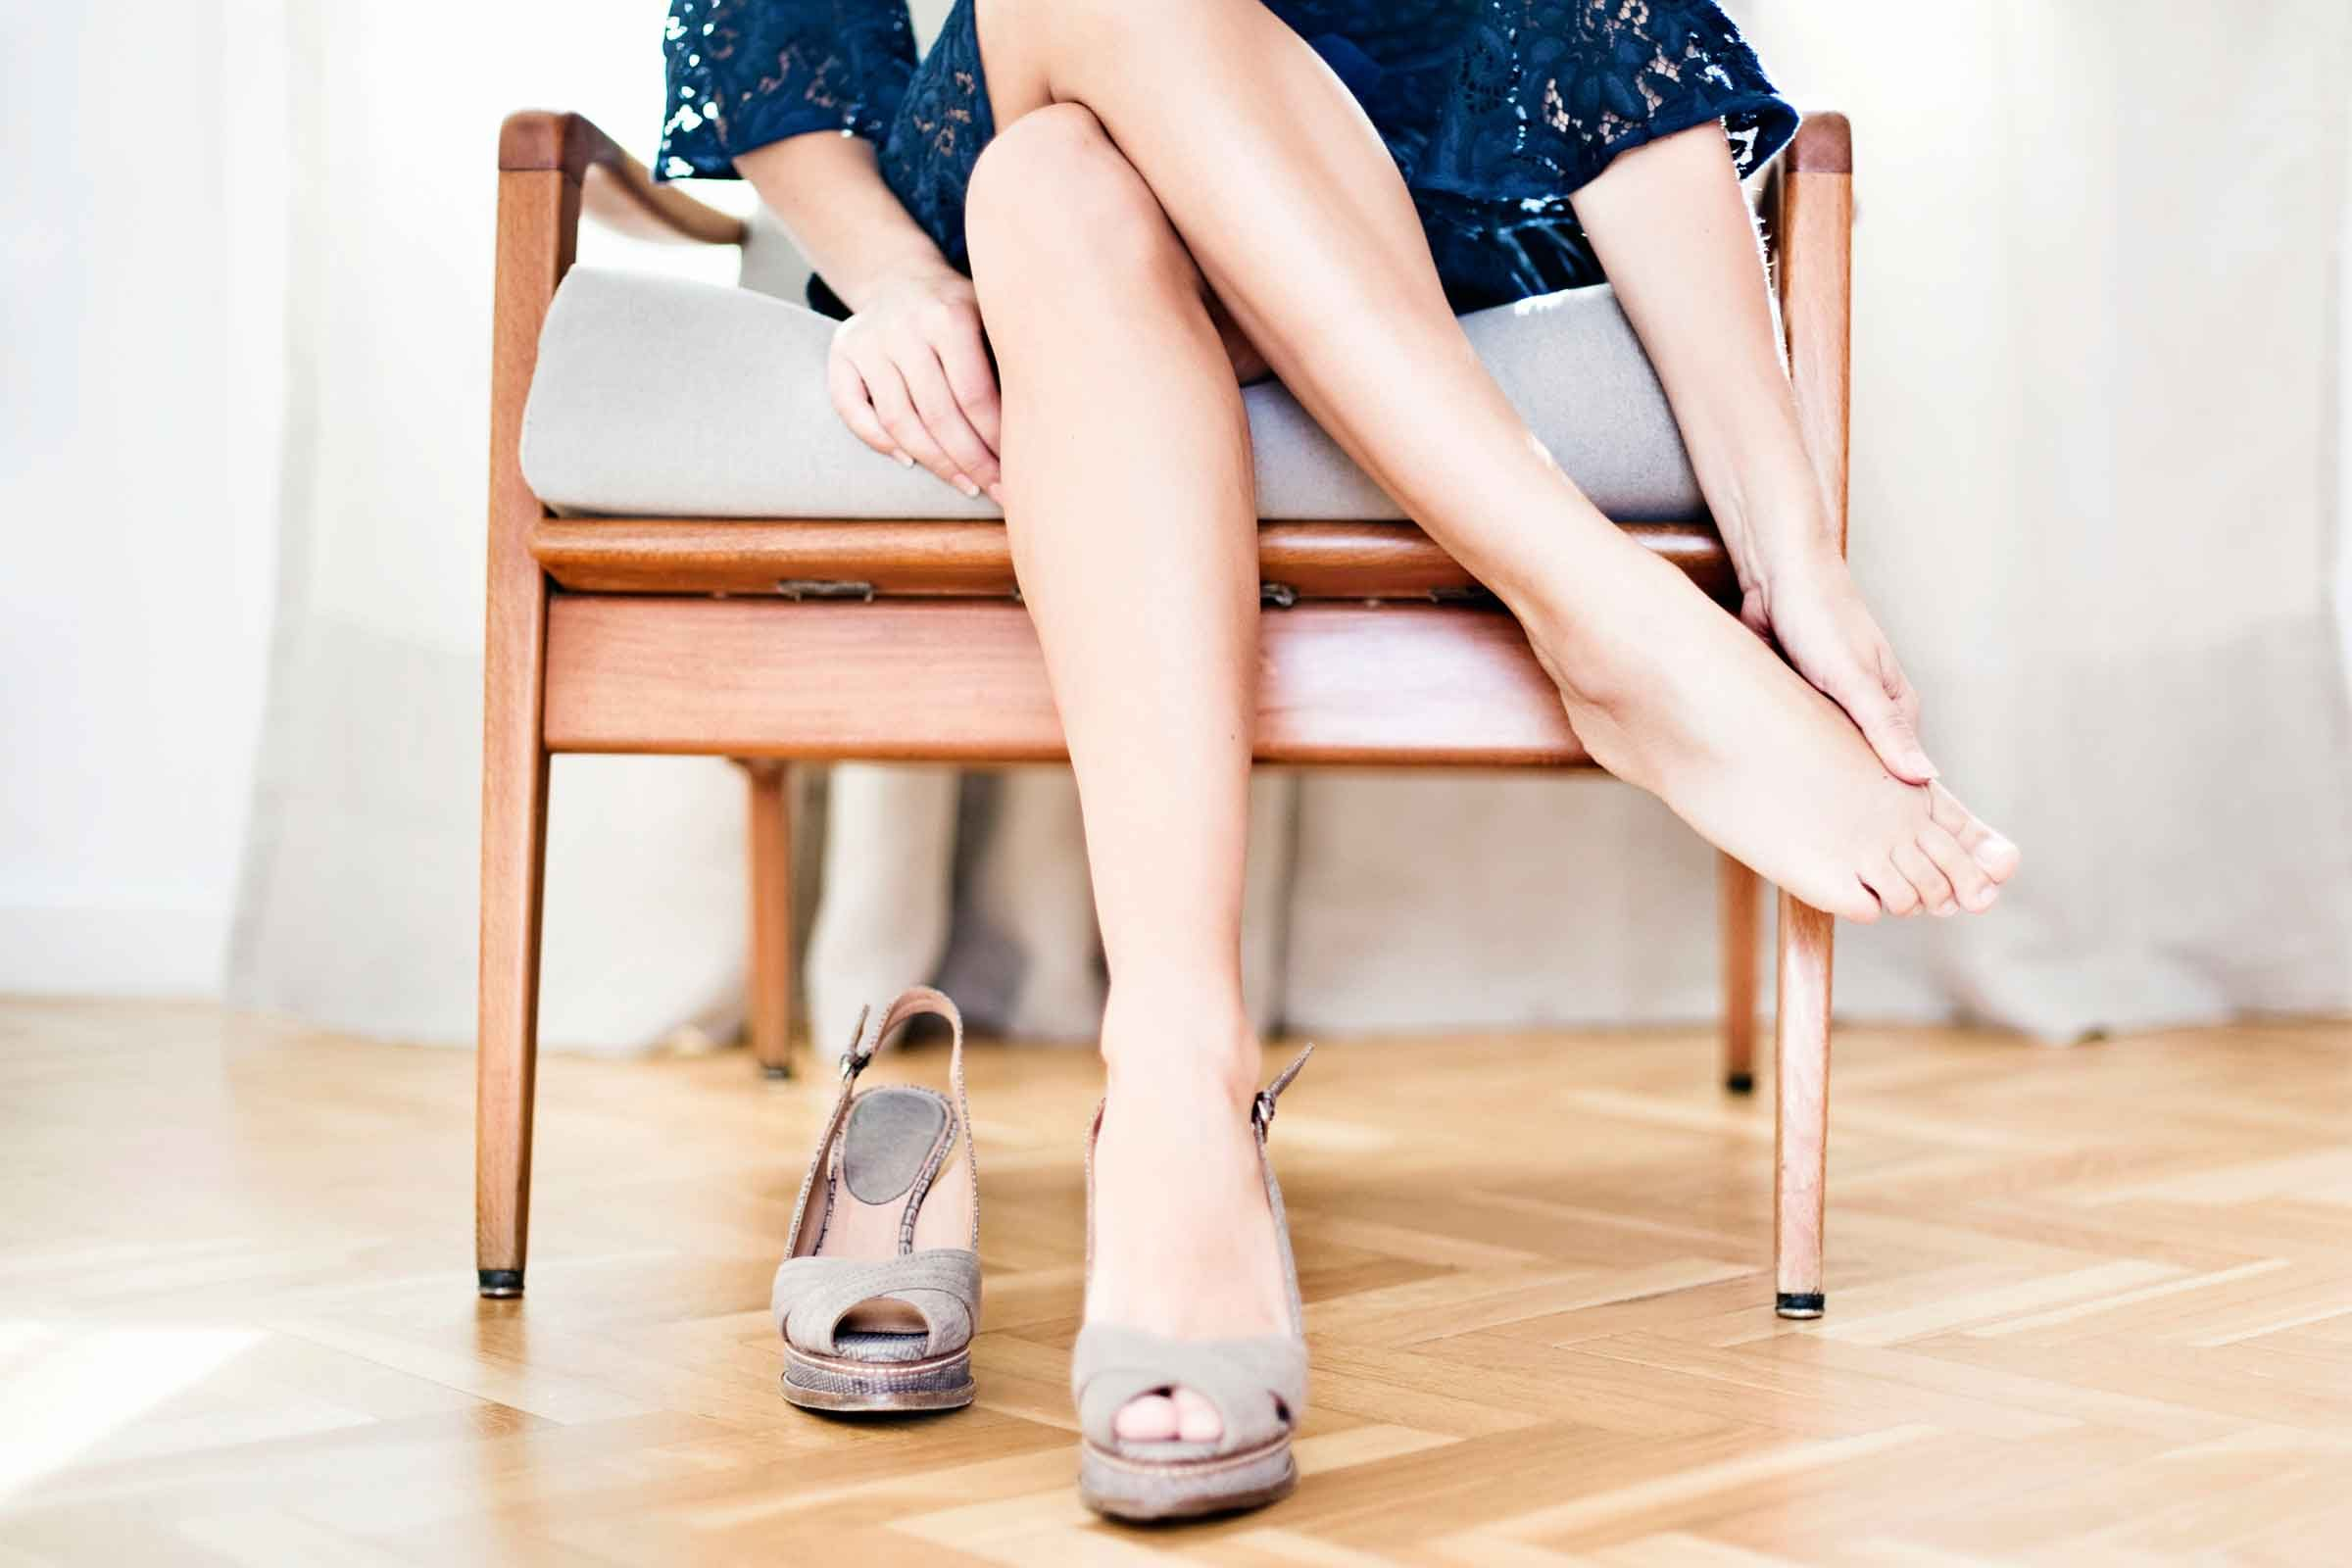 High heels can cause plantar fasciitis in the heel and arch of your foot